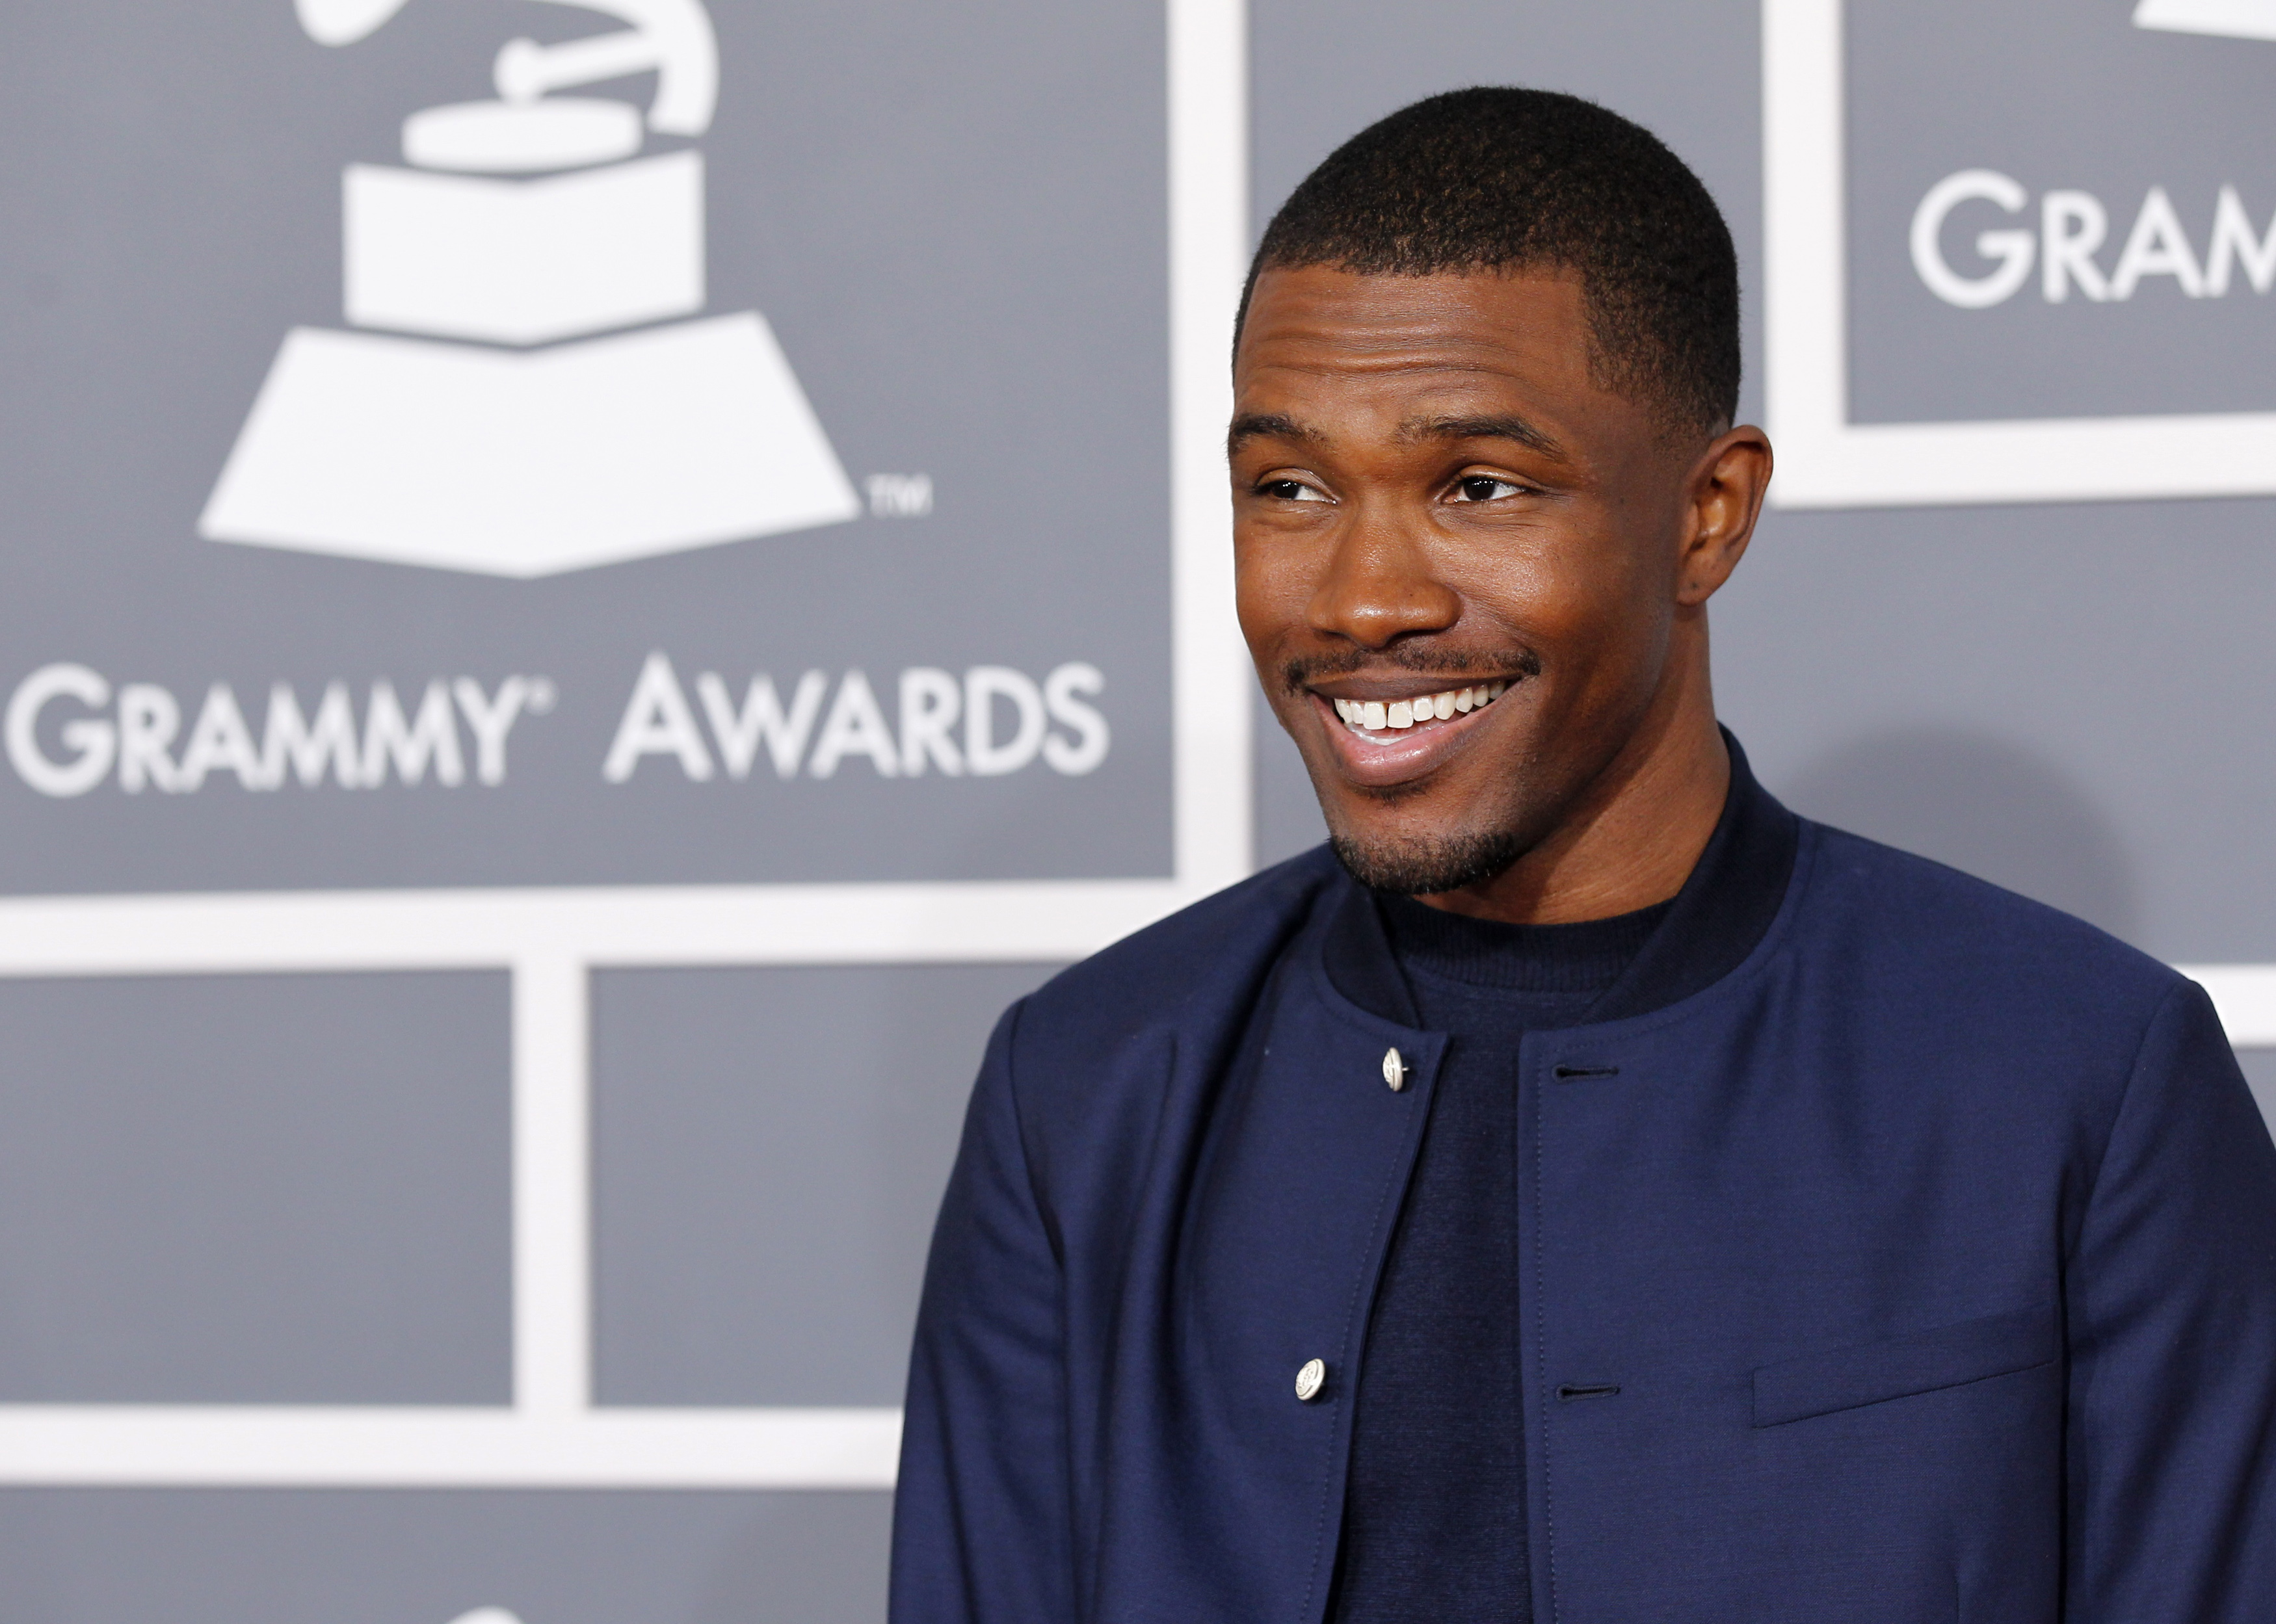 Frank Ocean Tumblr Post On Orlando Shooting Victims Tackles Gay Marriage Righ